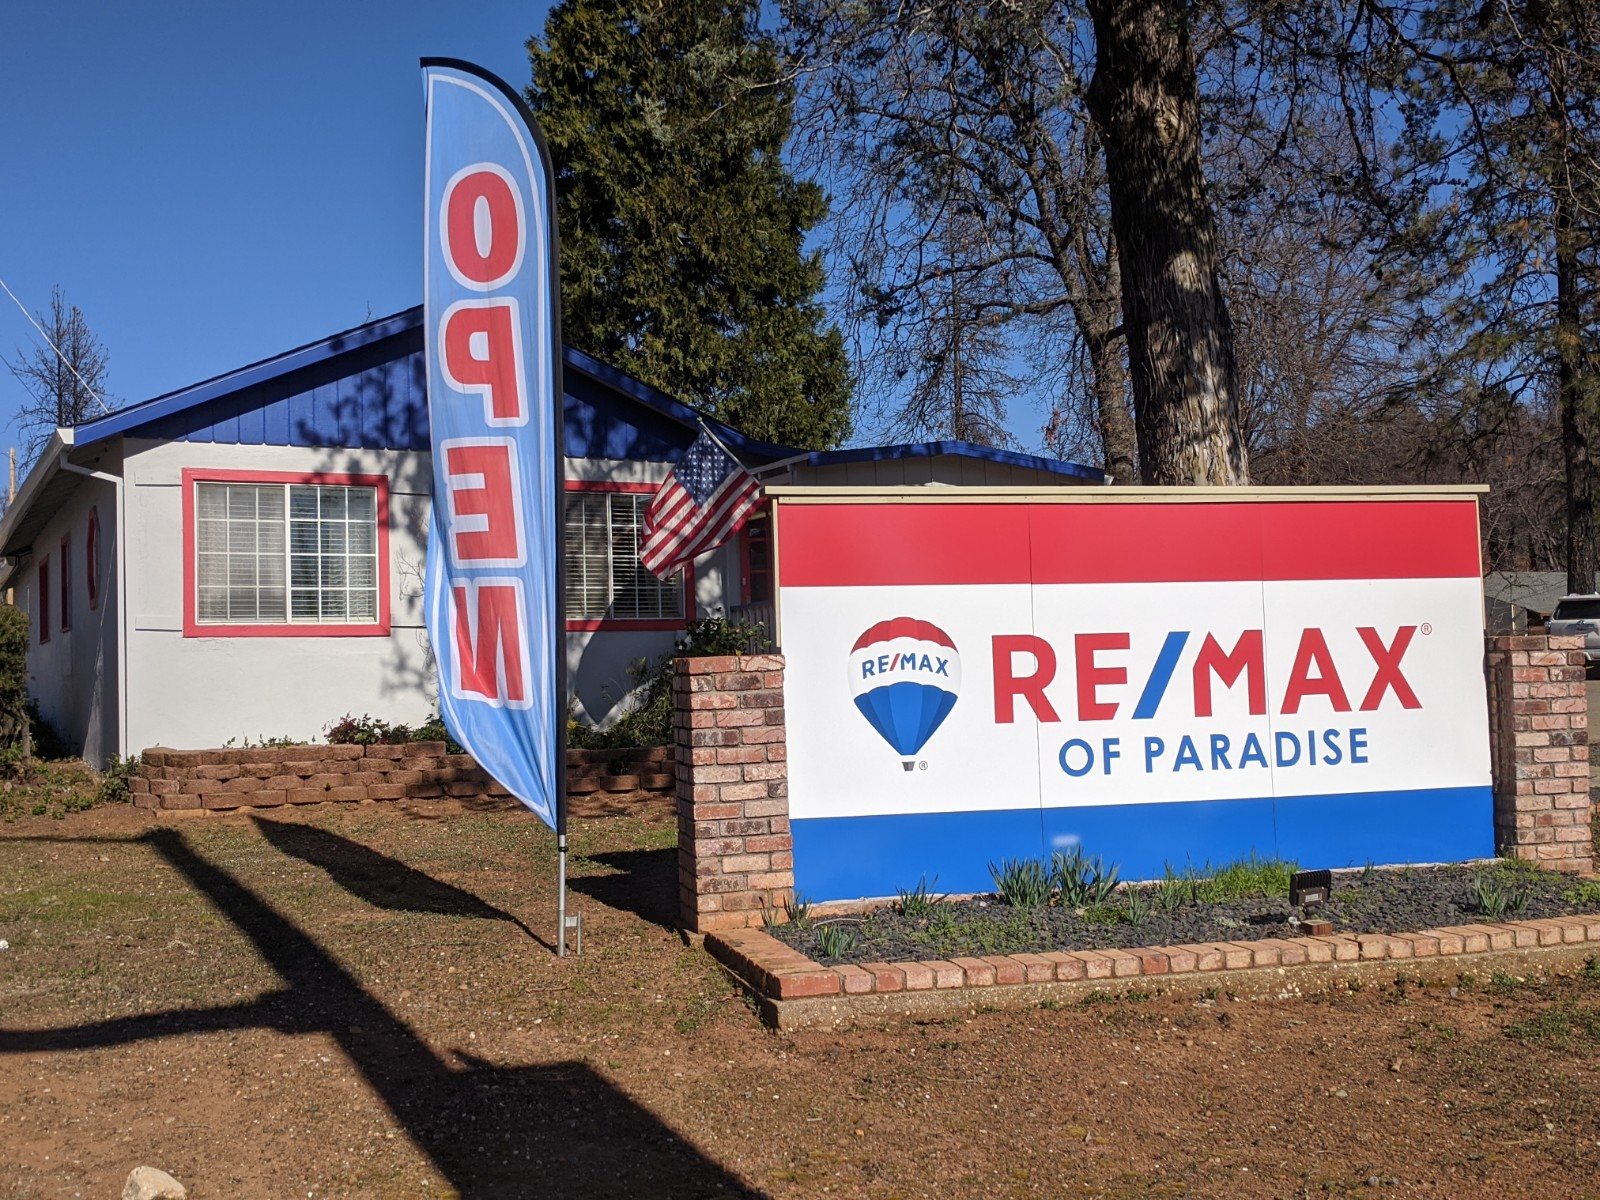 RE/MAX of Paradise